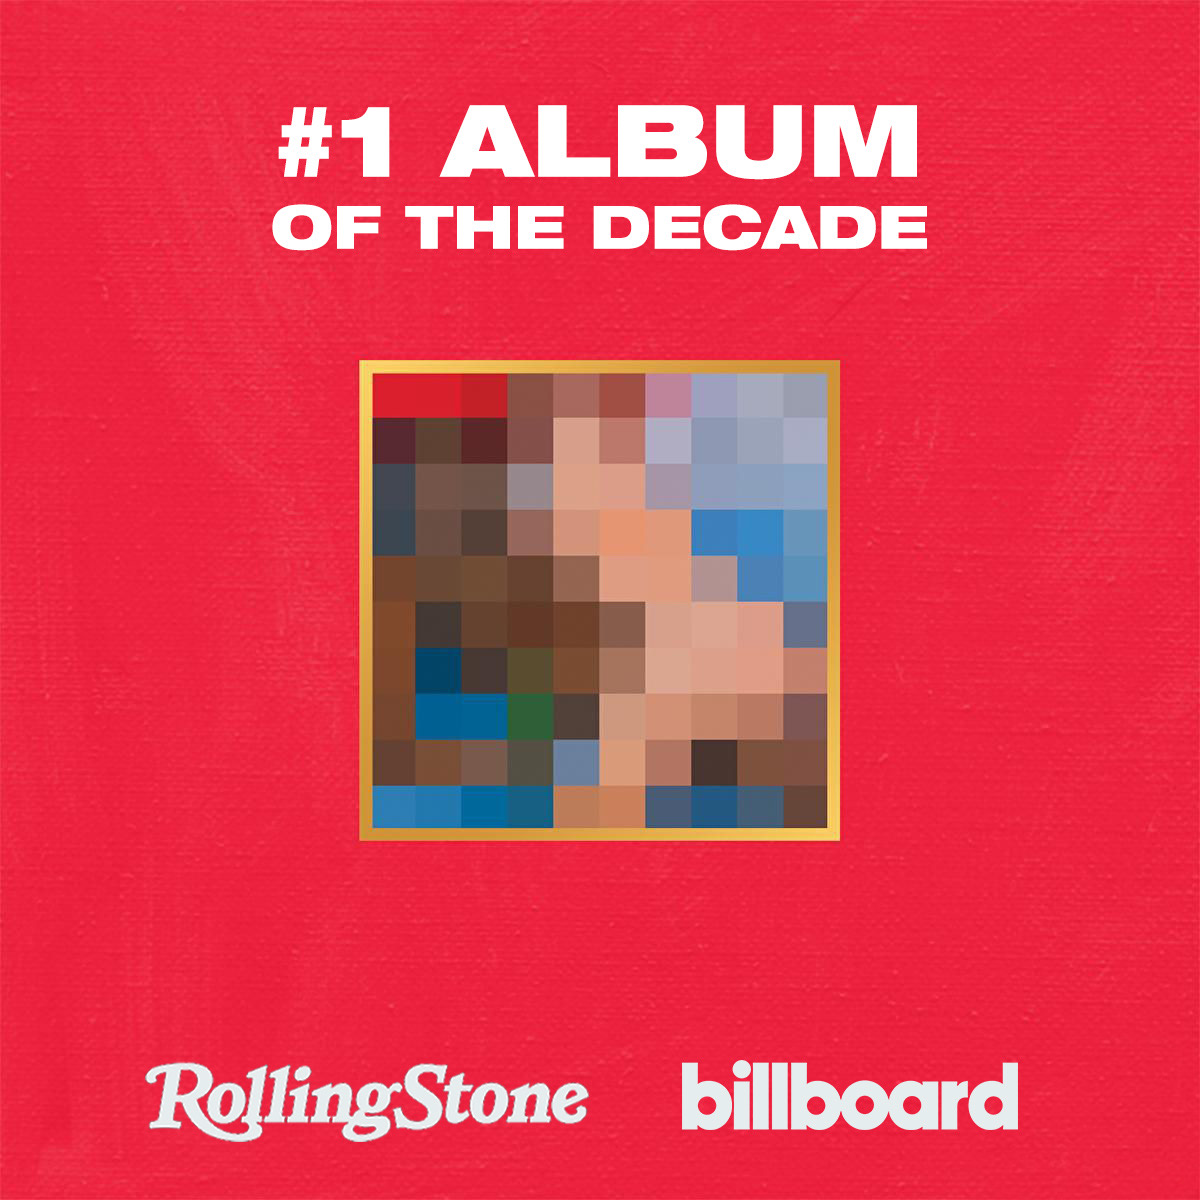 test Twitter Media - Kanye West's 'My Beautiful Dark Twisted Fantasy' has been named the #1 album of the decade by both Rolling Stone and Billboard. Congrats, @kanyewest! https://t.co/qqugJ1uhdx